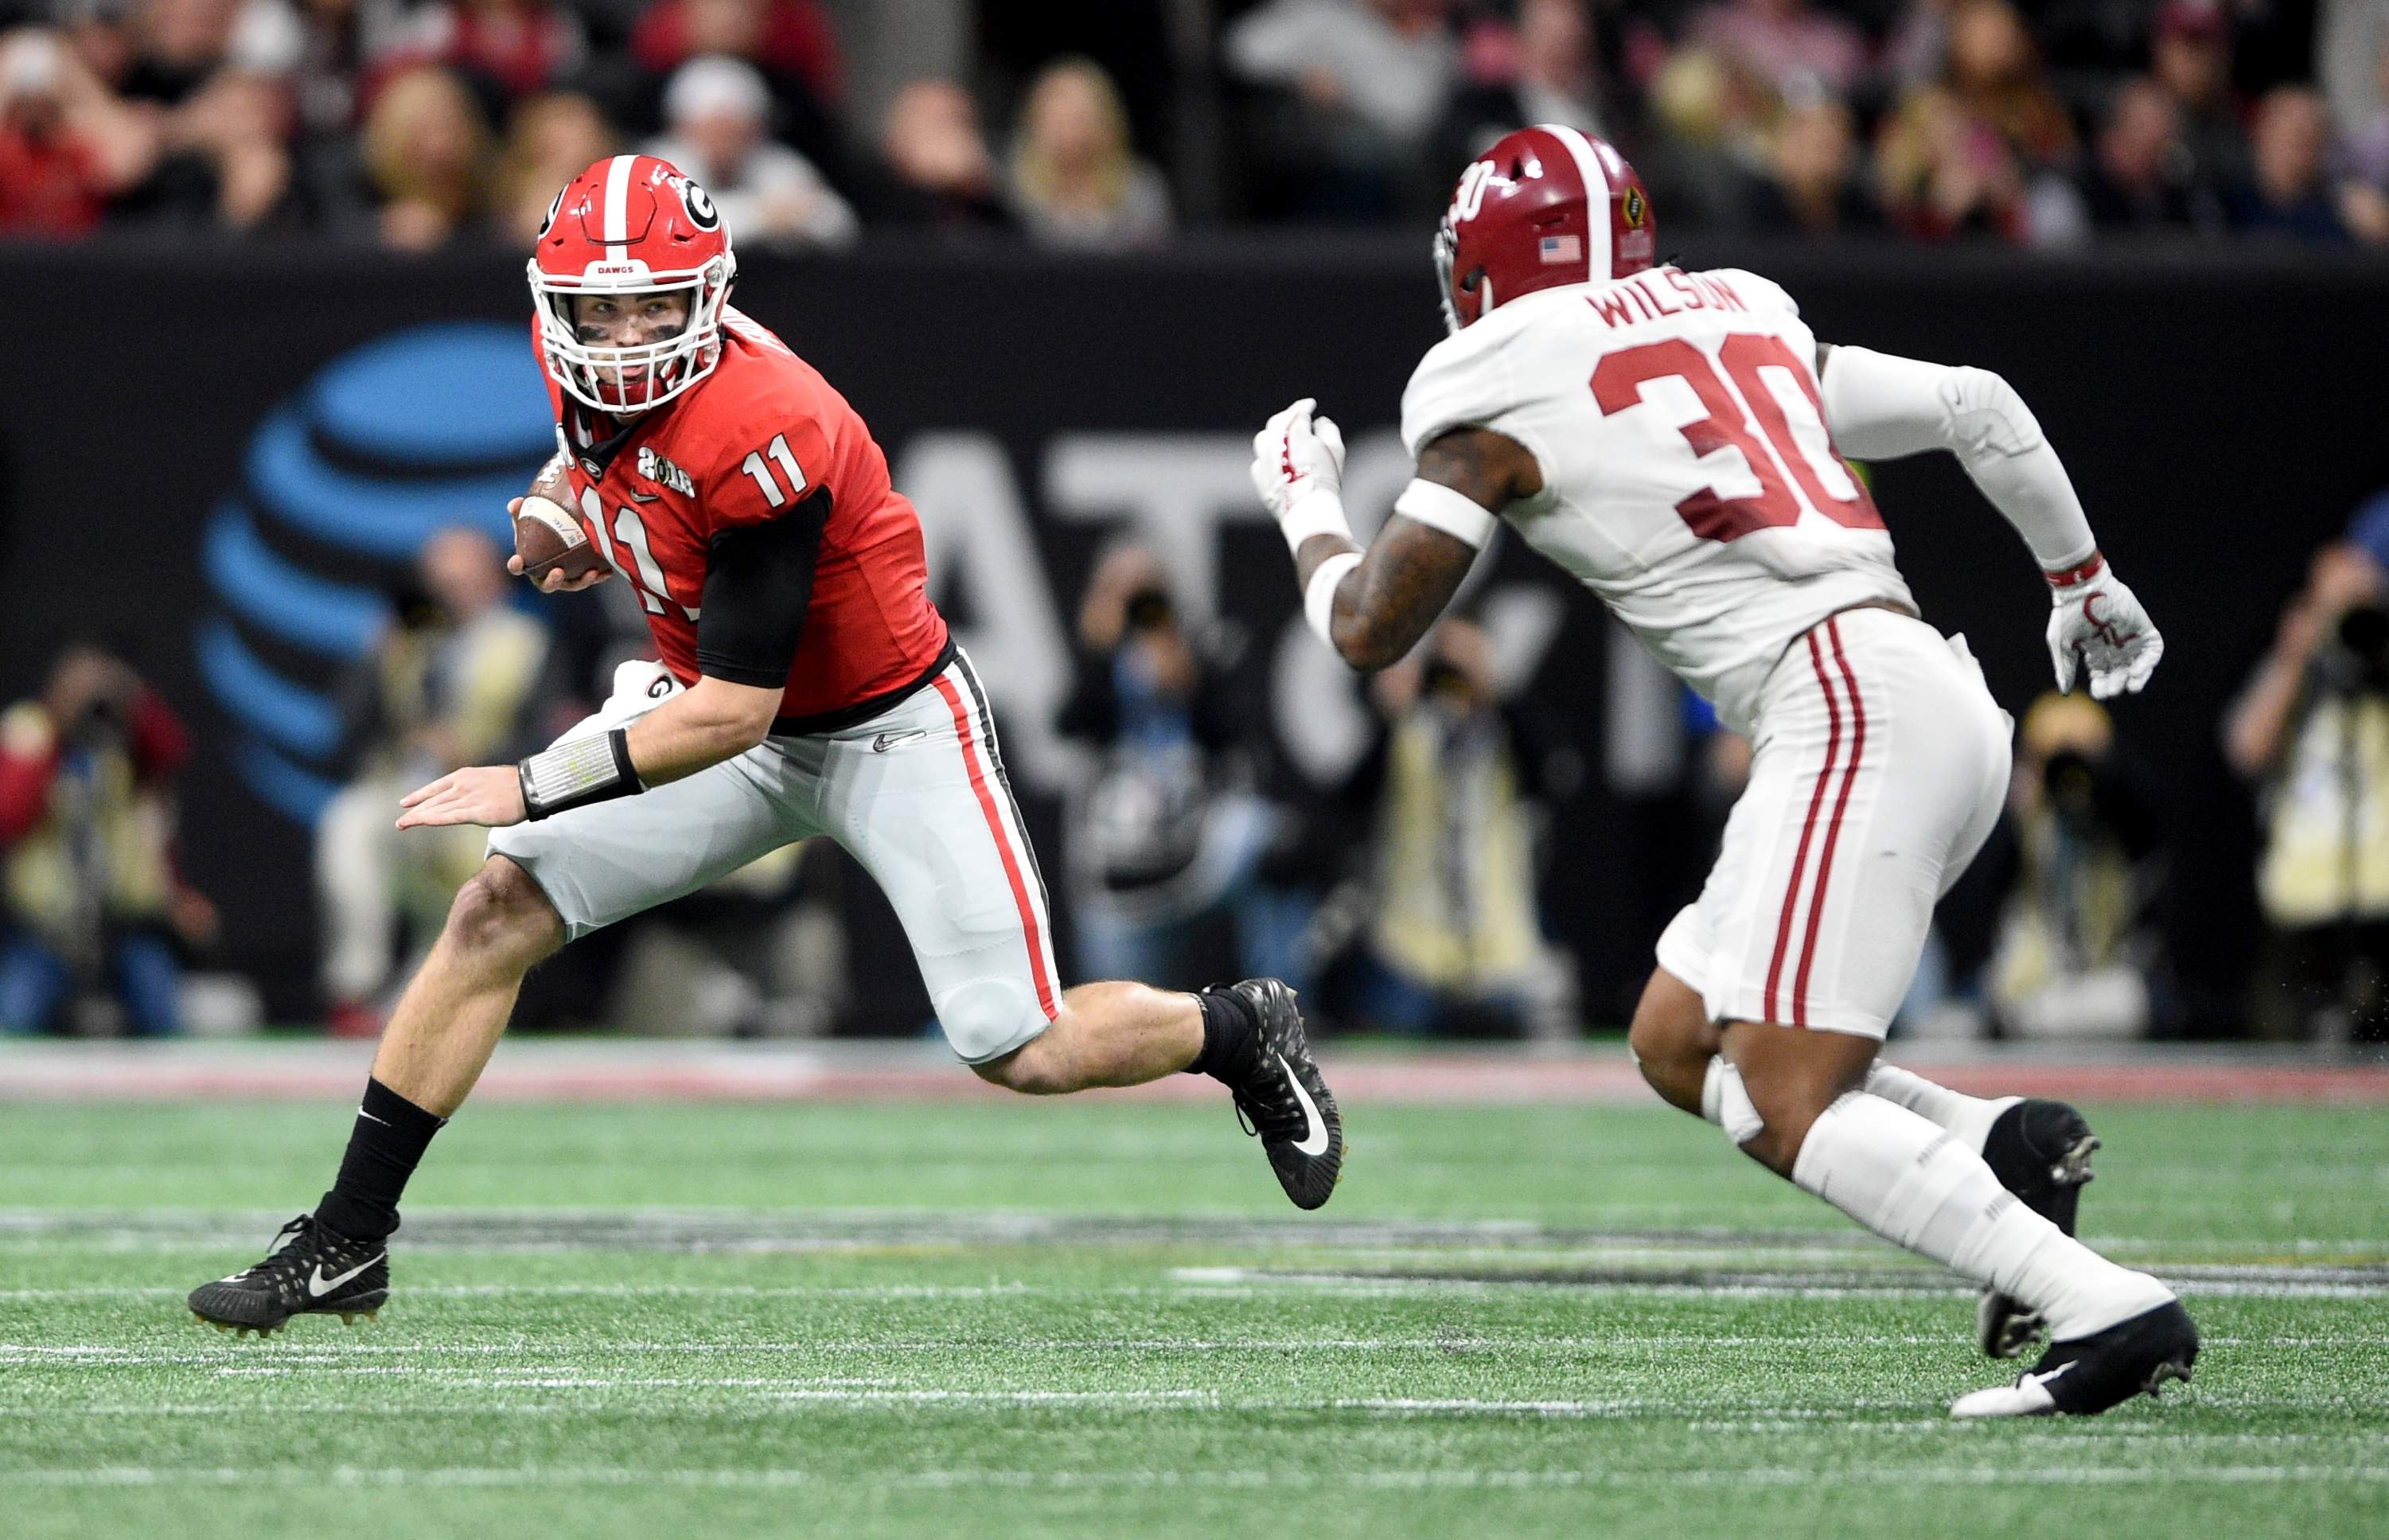 Georgia quarterback Jake Fromm tries to elude Alabama's Mack Wilson during the 2018 College Football Playoff National Championship at Mercedes-Benz Stadium in Atlanta, Ga., Monday evening January 8, 2018. MICHAEL HOLAHAN/AUGUSTA CHRONICLE